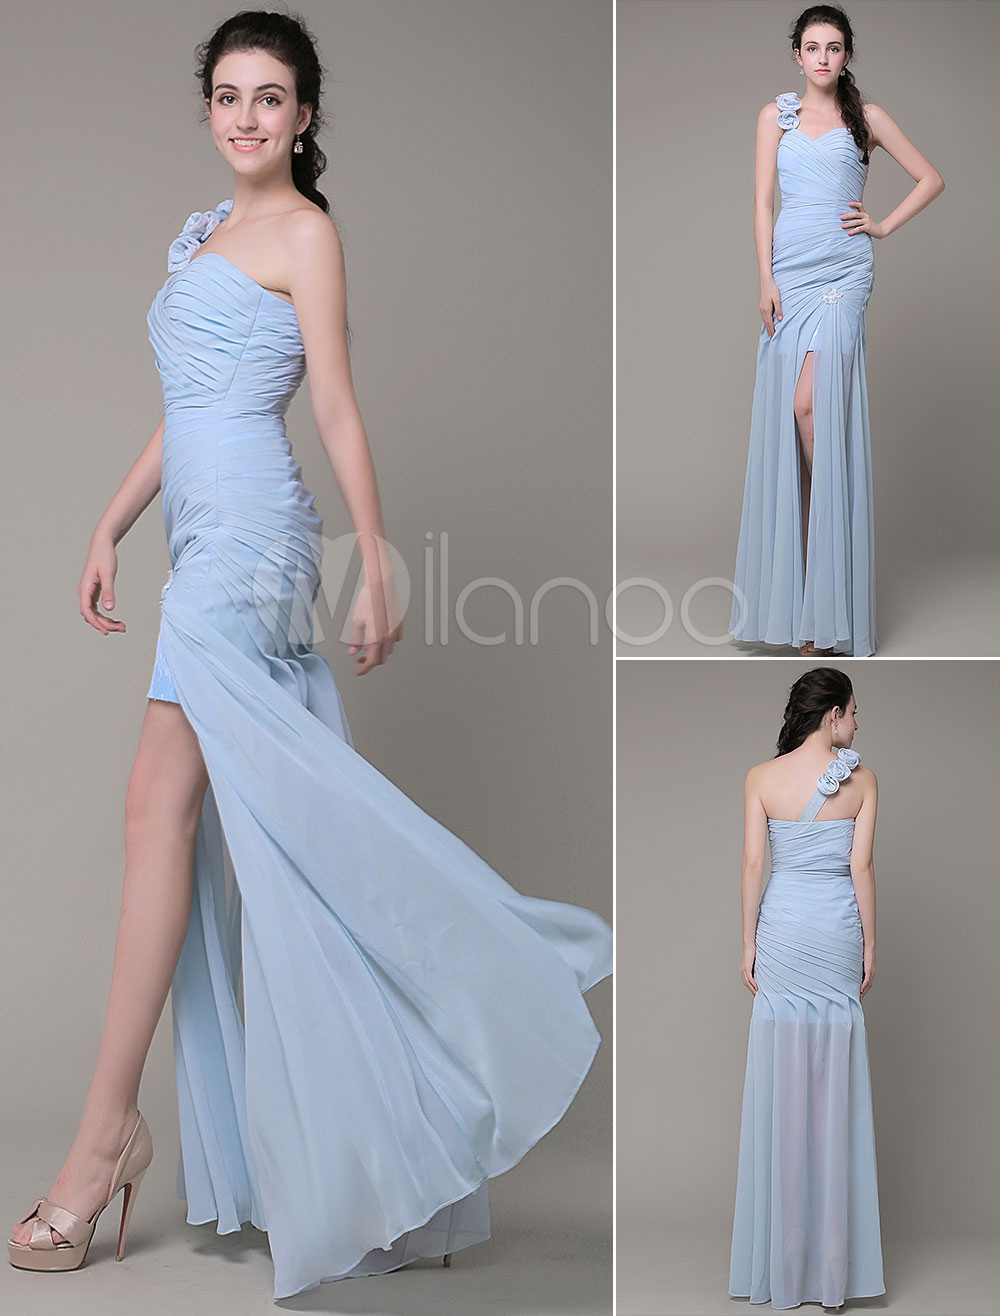 Buy Long Prom Dresses One-Shoulder Lace Flower Chiffon Pleated Beading Slipts Floor-Length Sheath Evening Dress Milanoo for $172.79 in Milanoo store